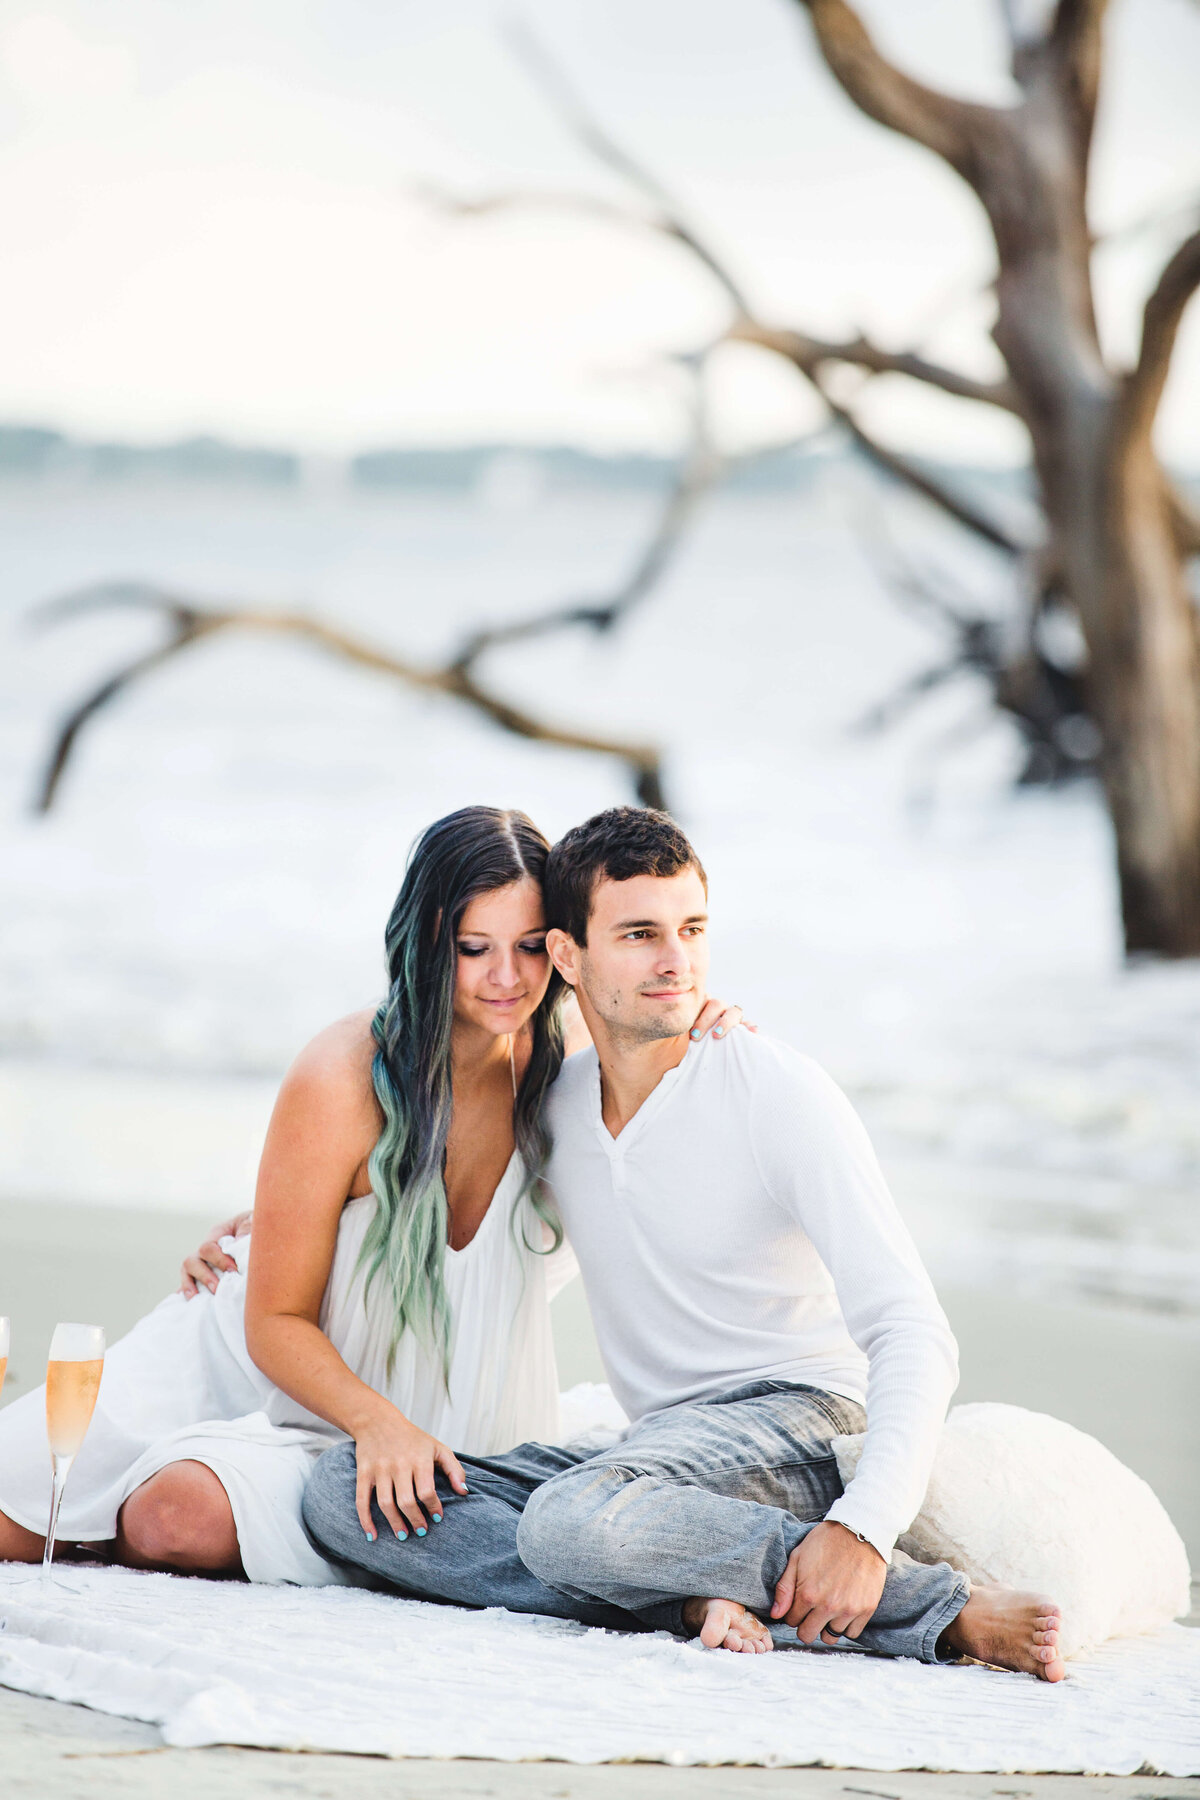 izzy-and-co-savannah-athens-atlanta-couples-engagement-lifestyle-photographer-11